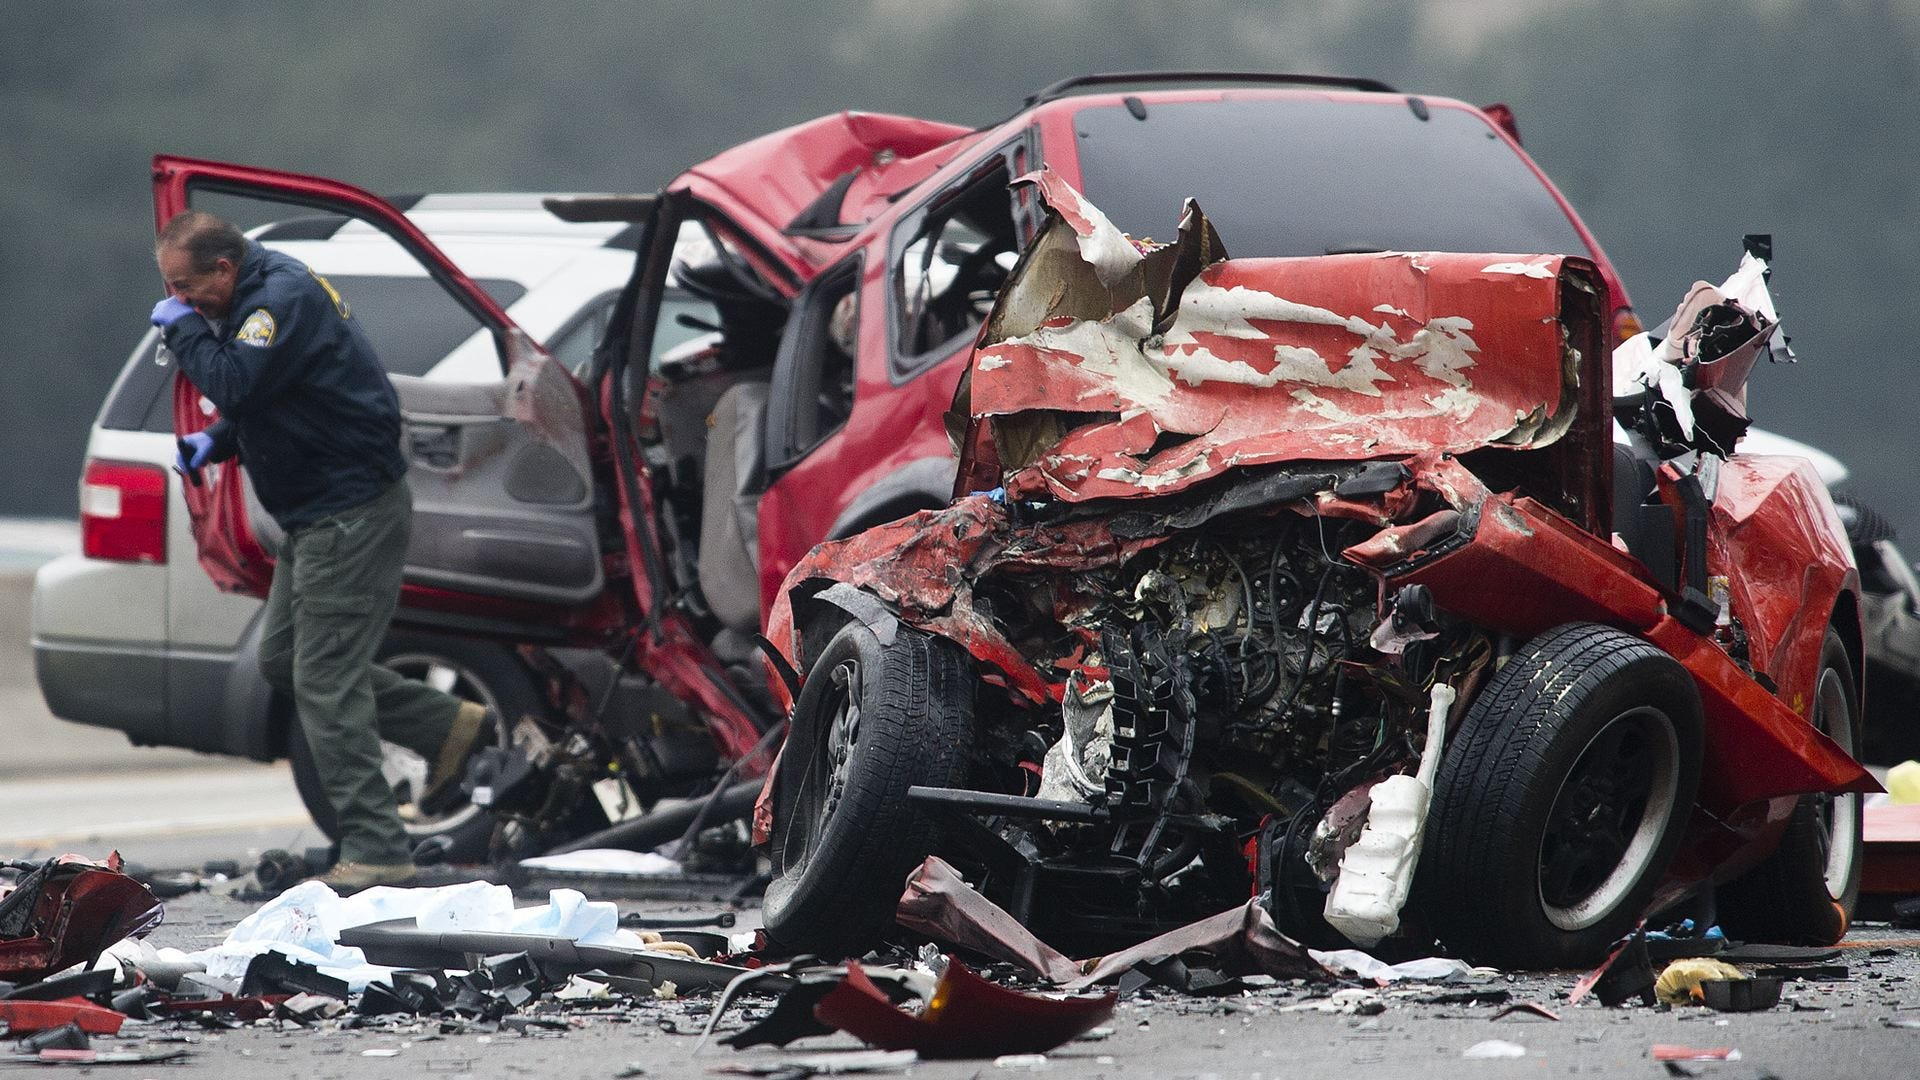 2 eerily similar crashes, 11 dead | USA NOW